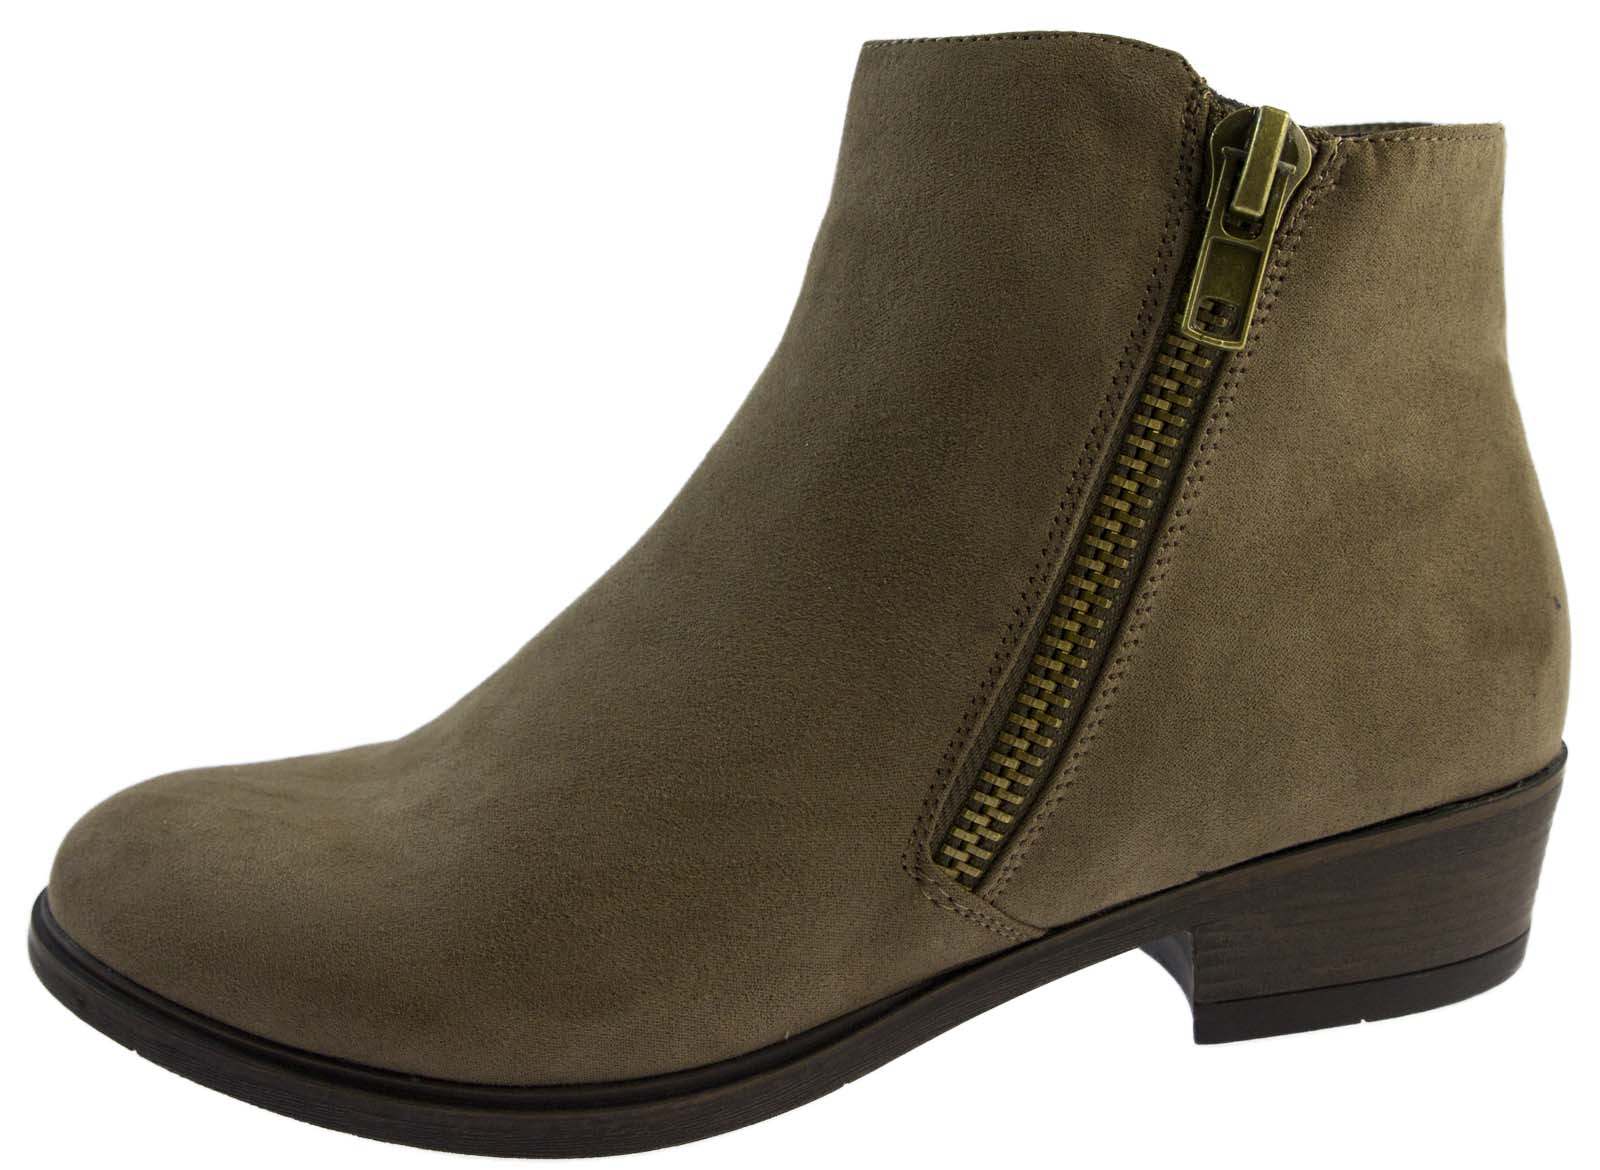 Shop women's made in italy shoes at dolcehouse.ml Discover a stylish selection of the latest brand name and designer fashions all at a great value. Made In Italy High Heel Suede Booties. Made In Italy Leather Low Chelsea Booties.